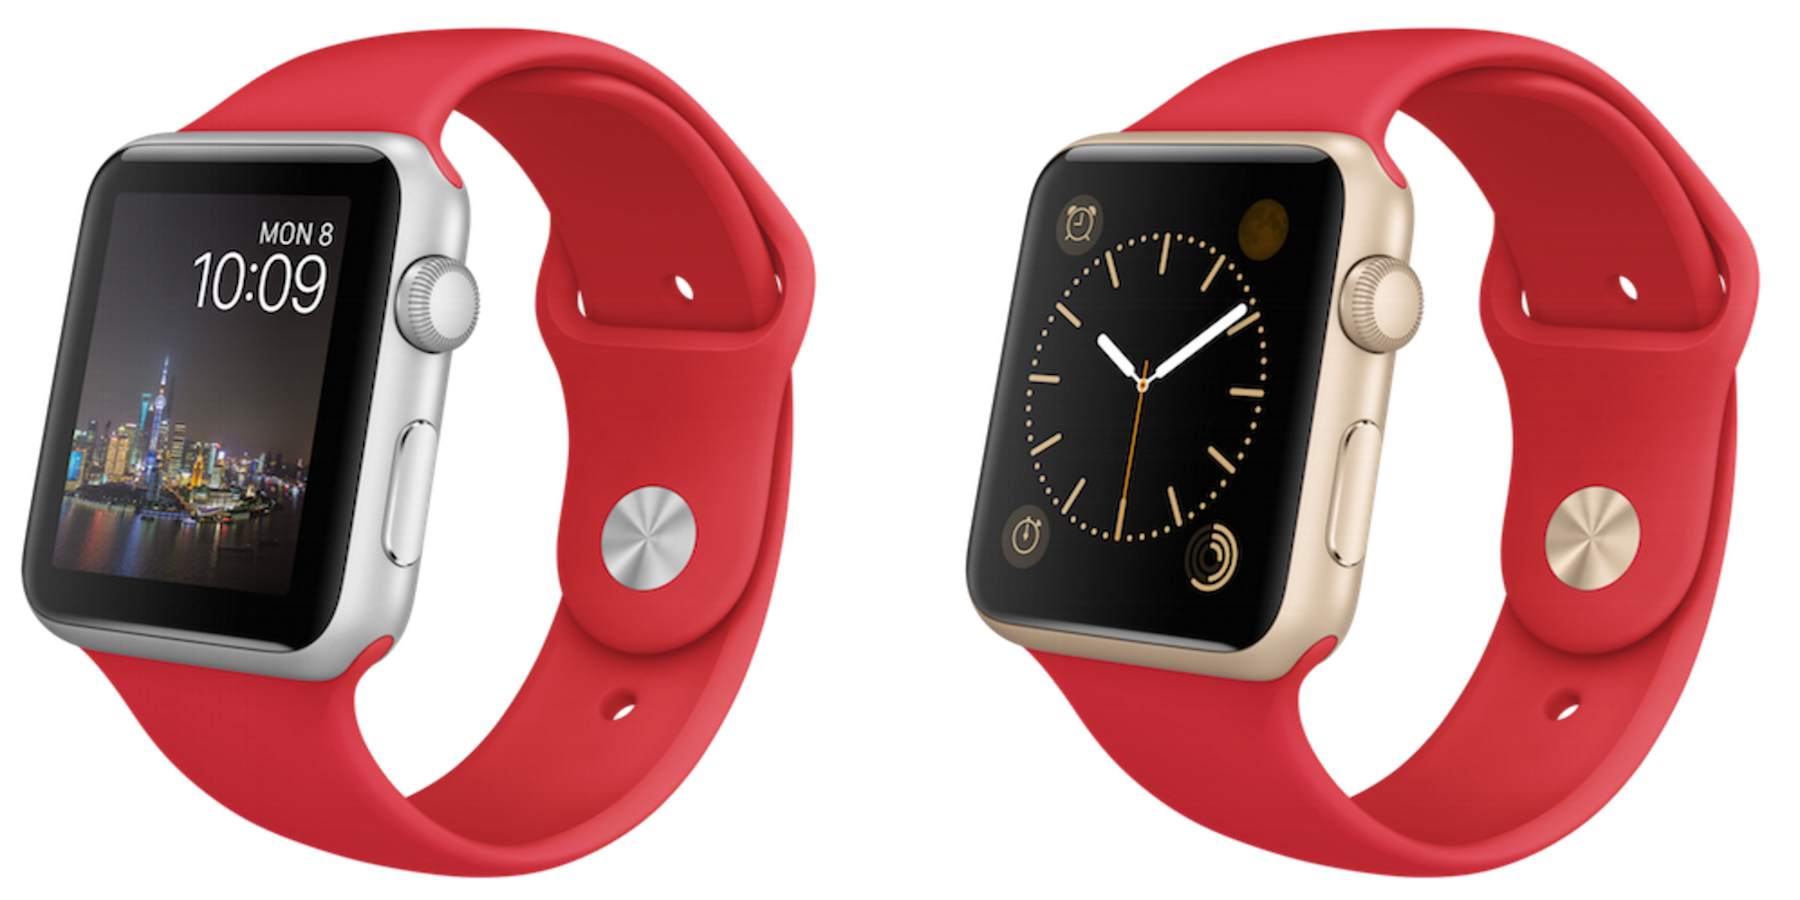 Two exclusive Apple Watch Sport models for Chinese New Year